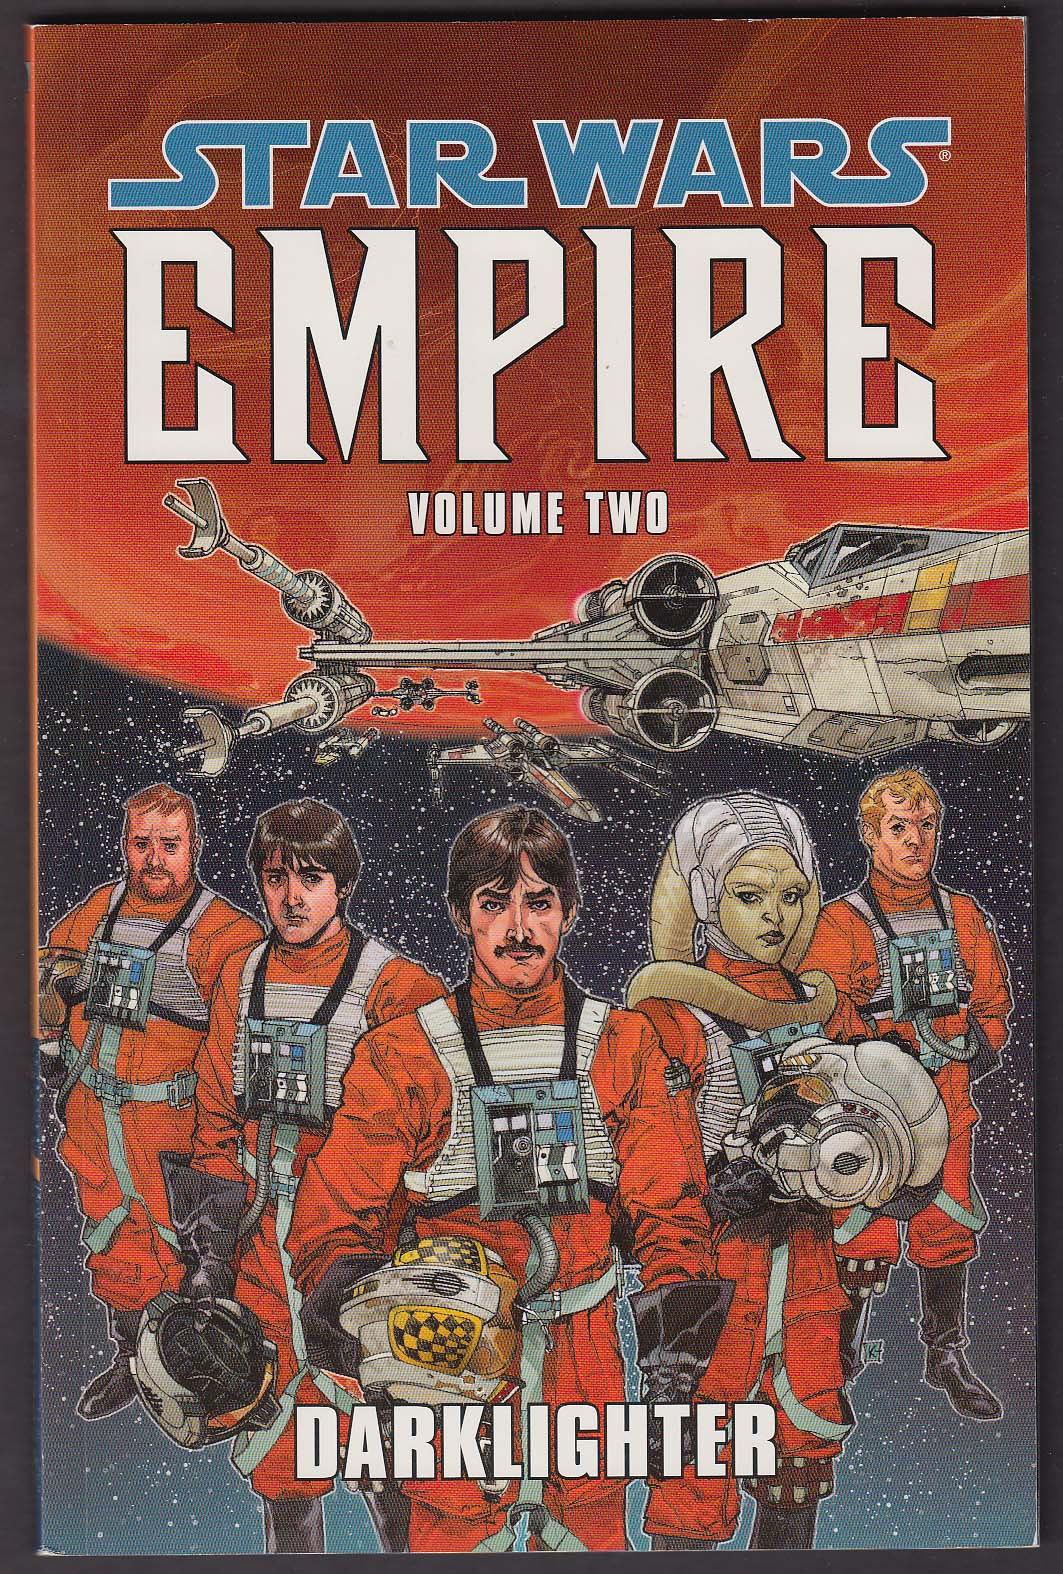 Star Wars Empire Vol 2 Dark Horse comic book graphic novel 1st printing 2004